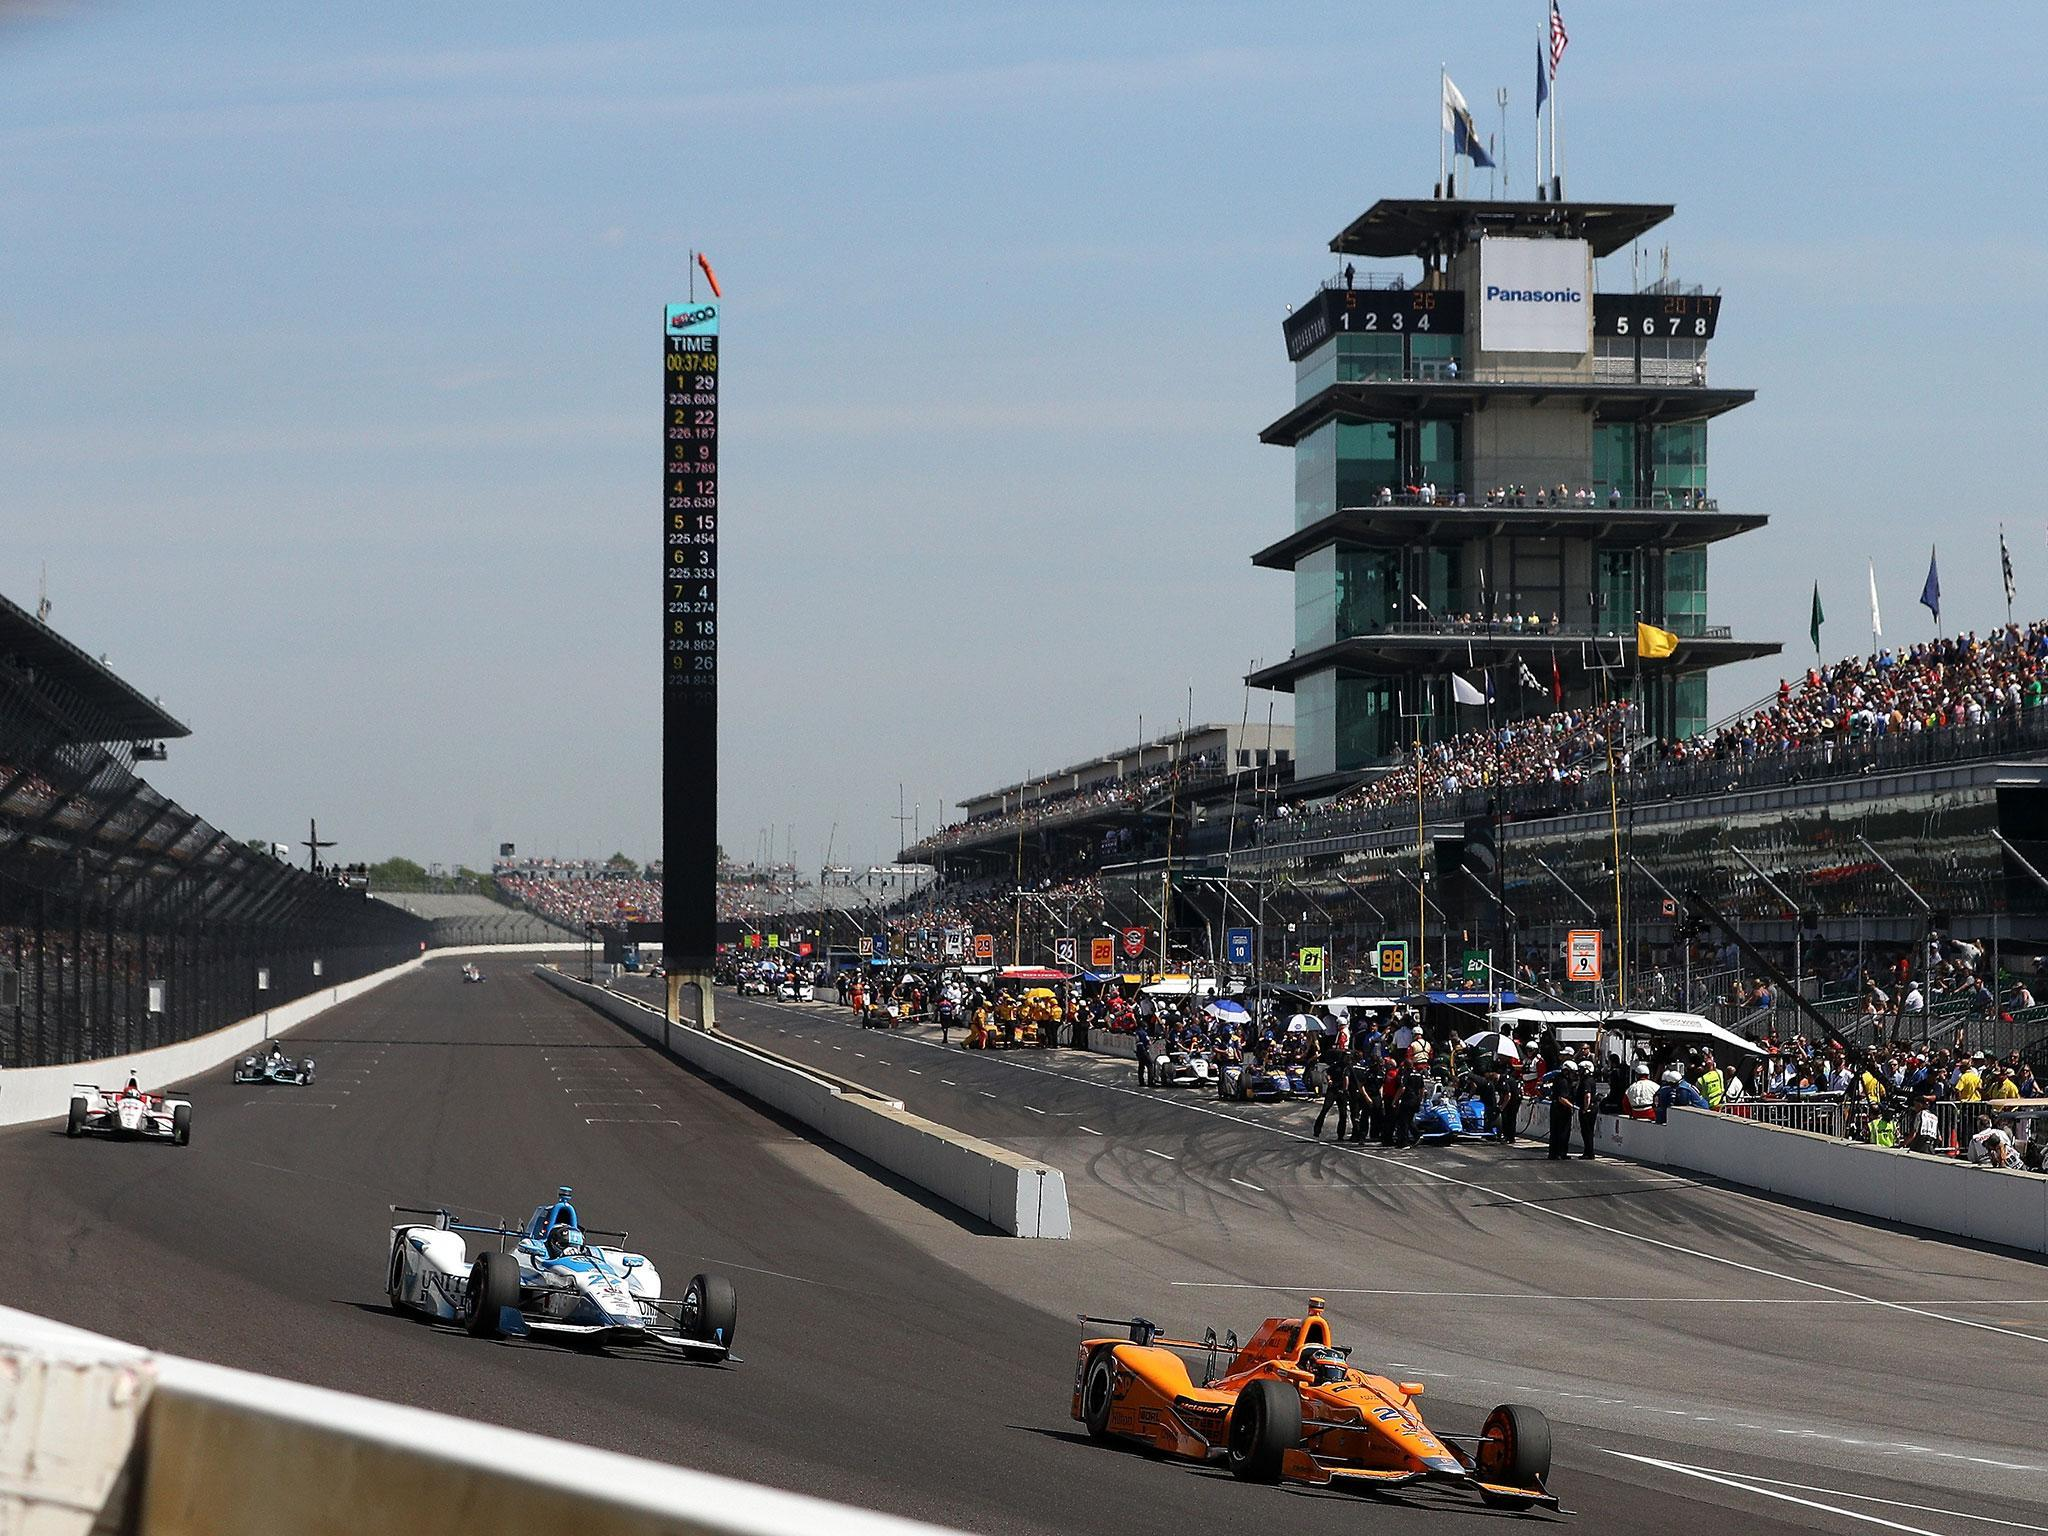 Indy 500 - latest news, breaking stories and comment - The Independent